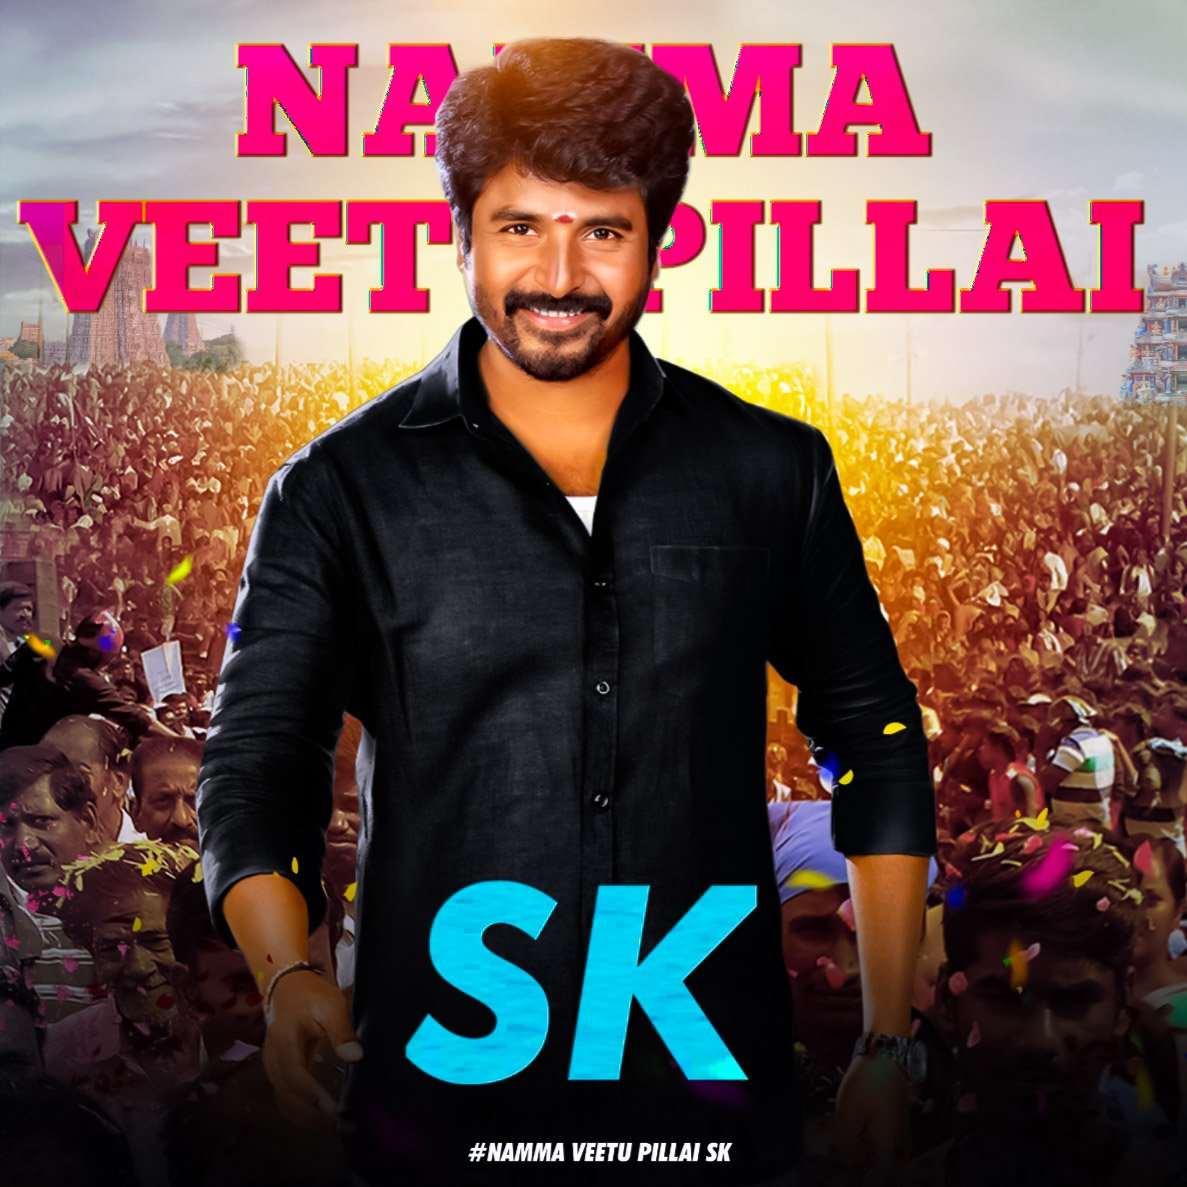 Here the special tag for our annan(our hero, our inspiration, our motivator)   #NammaVeettuPillaiSK    Lets celebrate for our Annan <br>http://pic.twitter.com/5O5a4lK0Ex